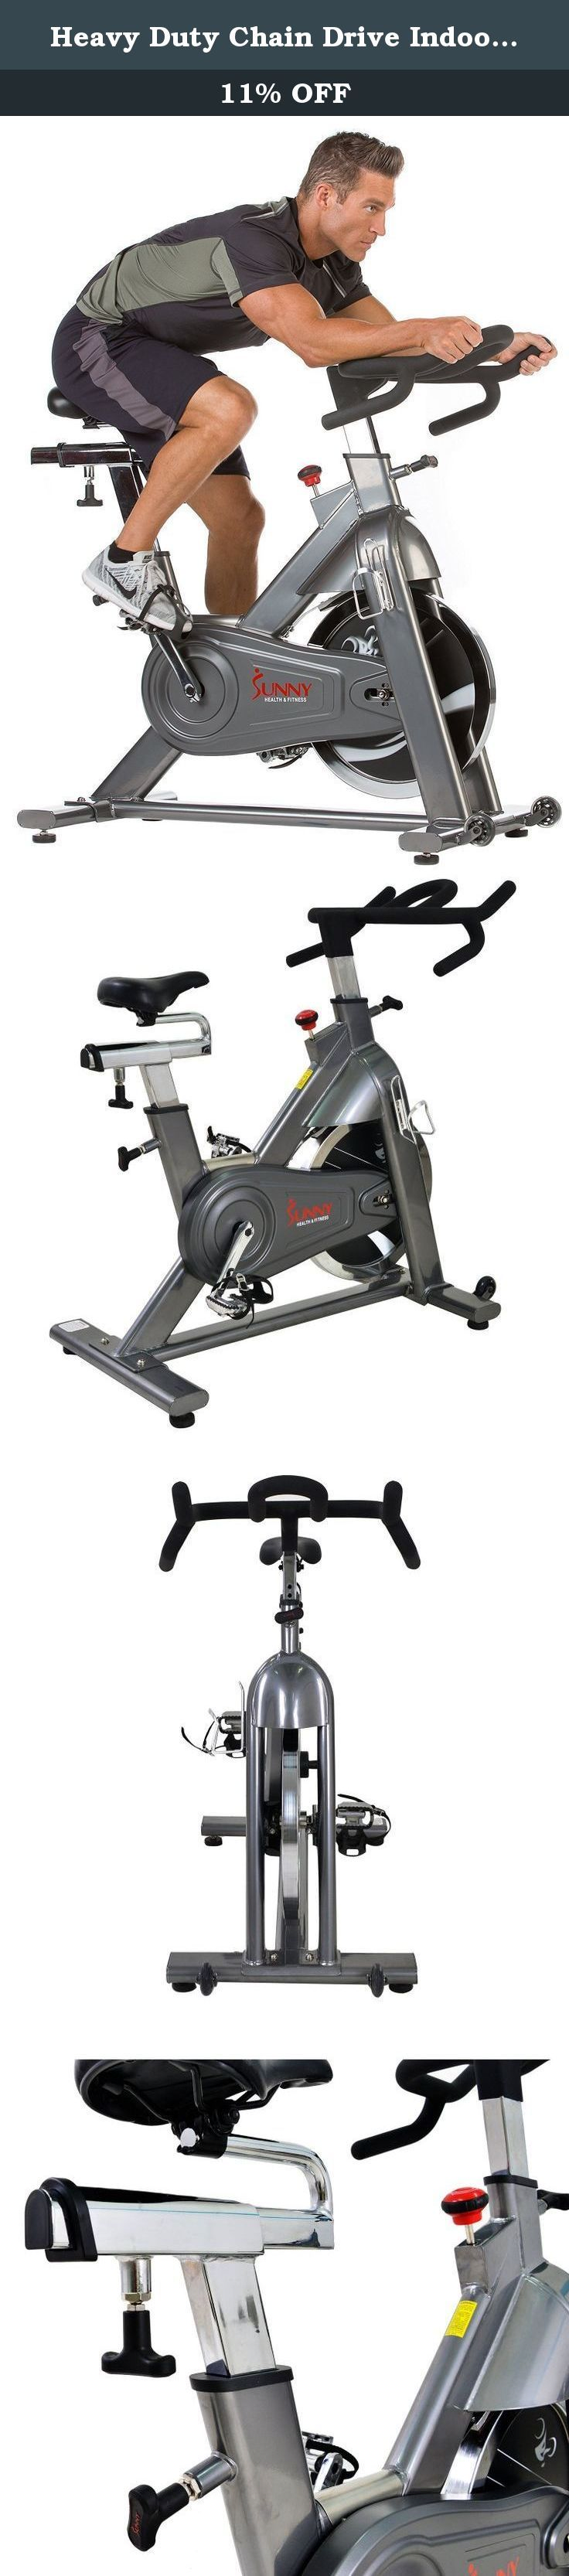 Heavy Duty Chain Drive Indoor Cycling Exercise Bike by Sunny Health & Fitness – SF-B1516. Spin into shape with the top of the line Sunny Health & Fitness SF-B1516 commercial cycling bike! this bike offers all of the necessities for an intense yet enjoyable cycling workout at the gym or at the comfort of your own home. With a newly improved and easy-to-replace crank shaft system, 48.5 lb chromed solid flywheel, fully adjustable seat and height adjustable handlebars, Micro adjustable...